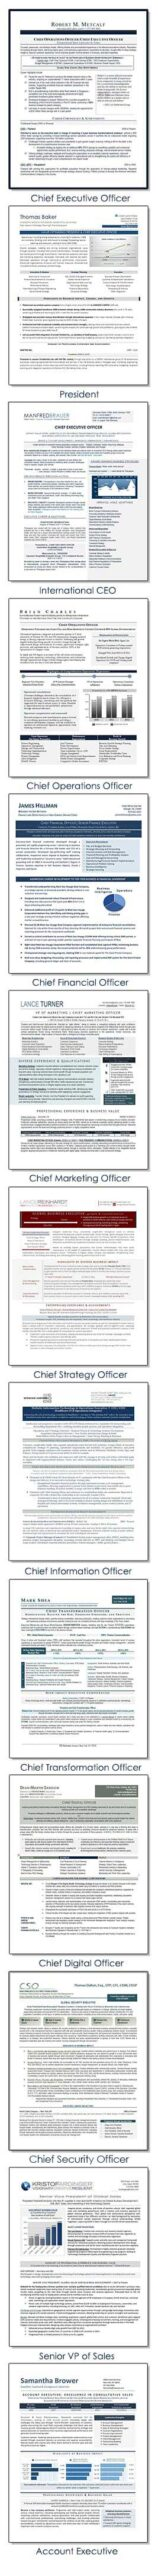 top executive resume writing services in and level new examples for masters degree lawn Resume Executive Level Resume Writing Services